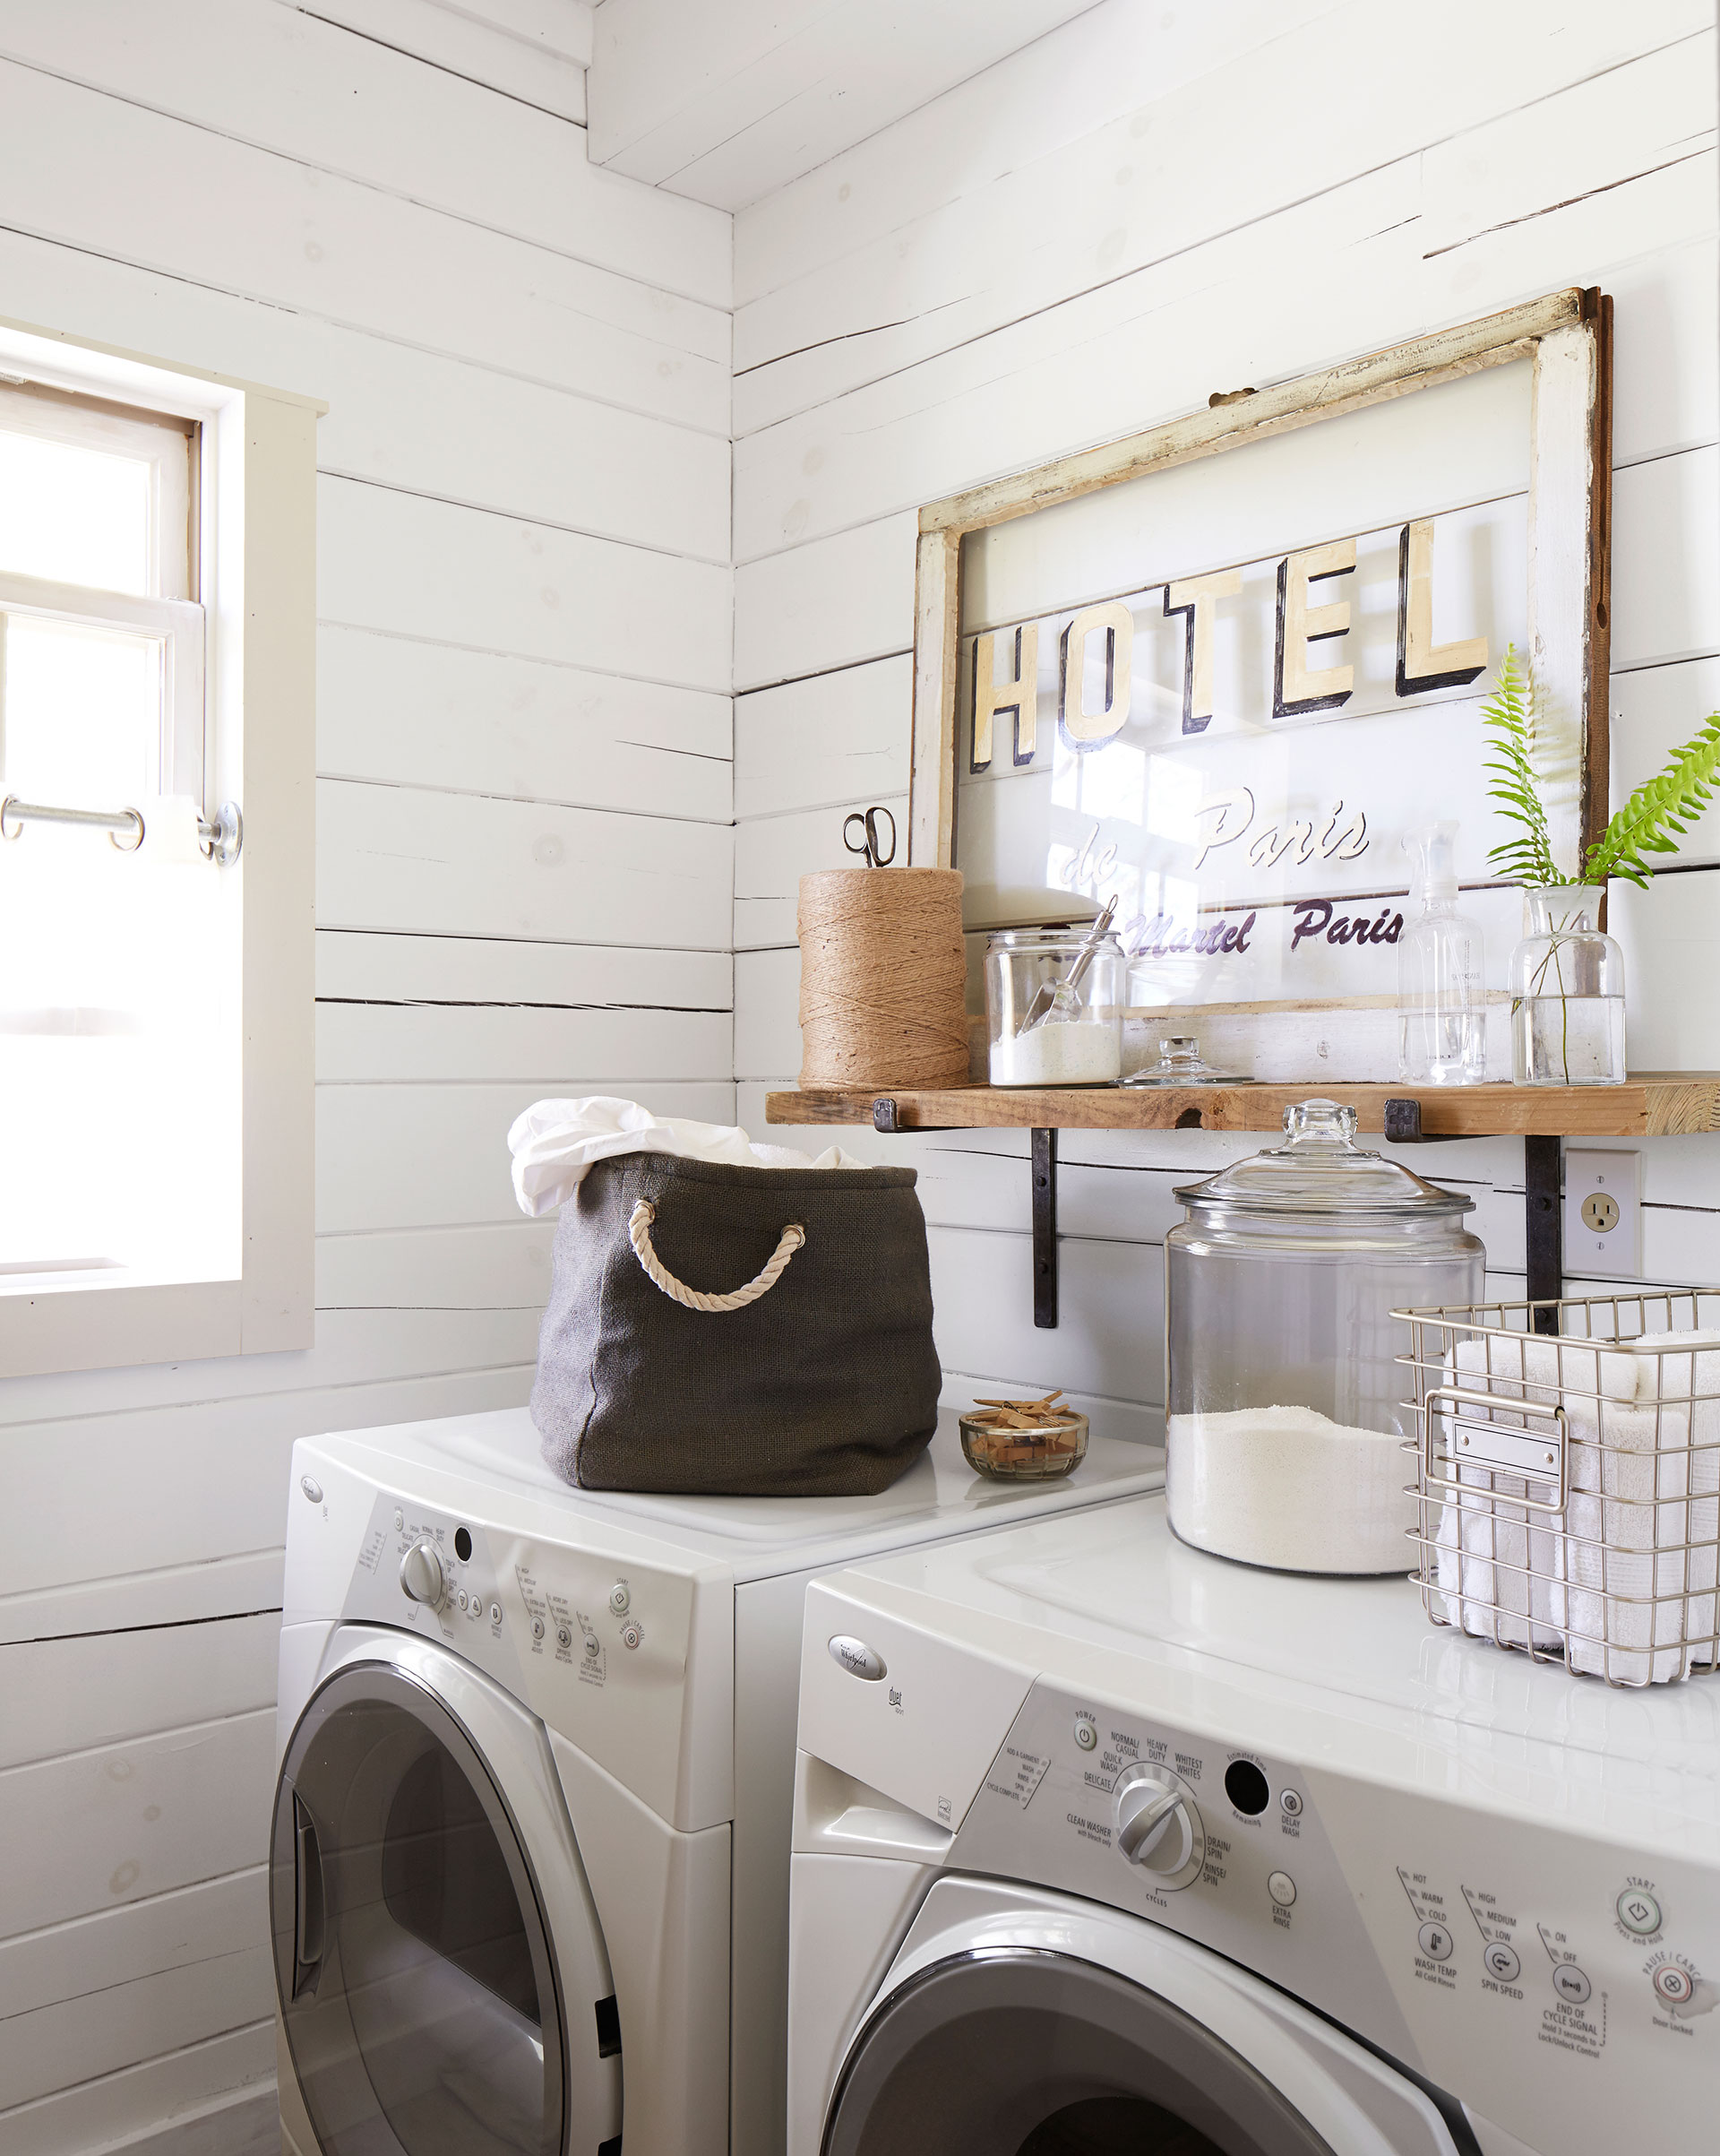 Mud Room Ideas Decorating a Mud or Laundry Room